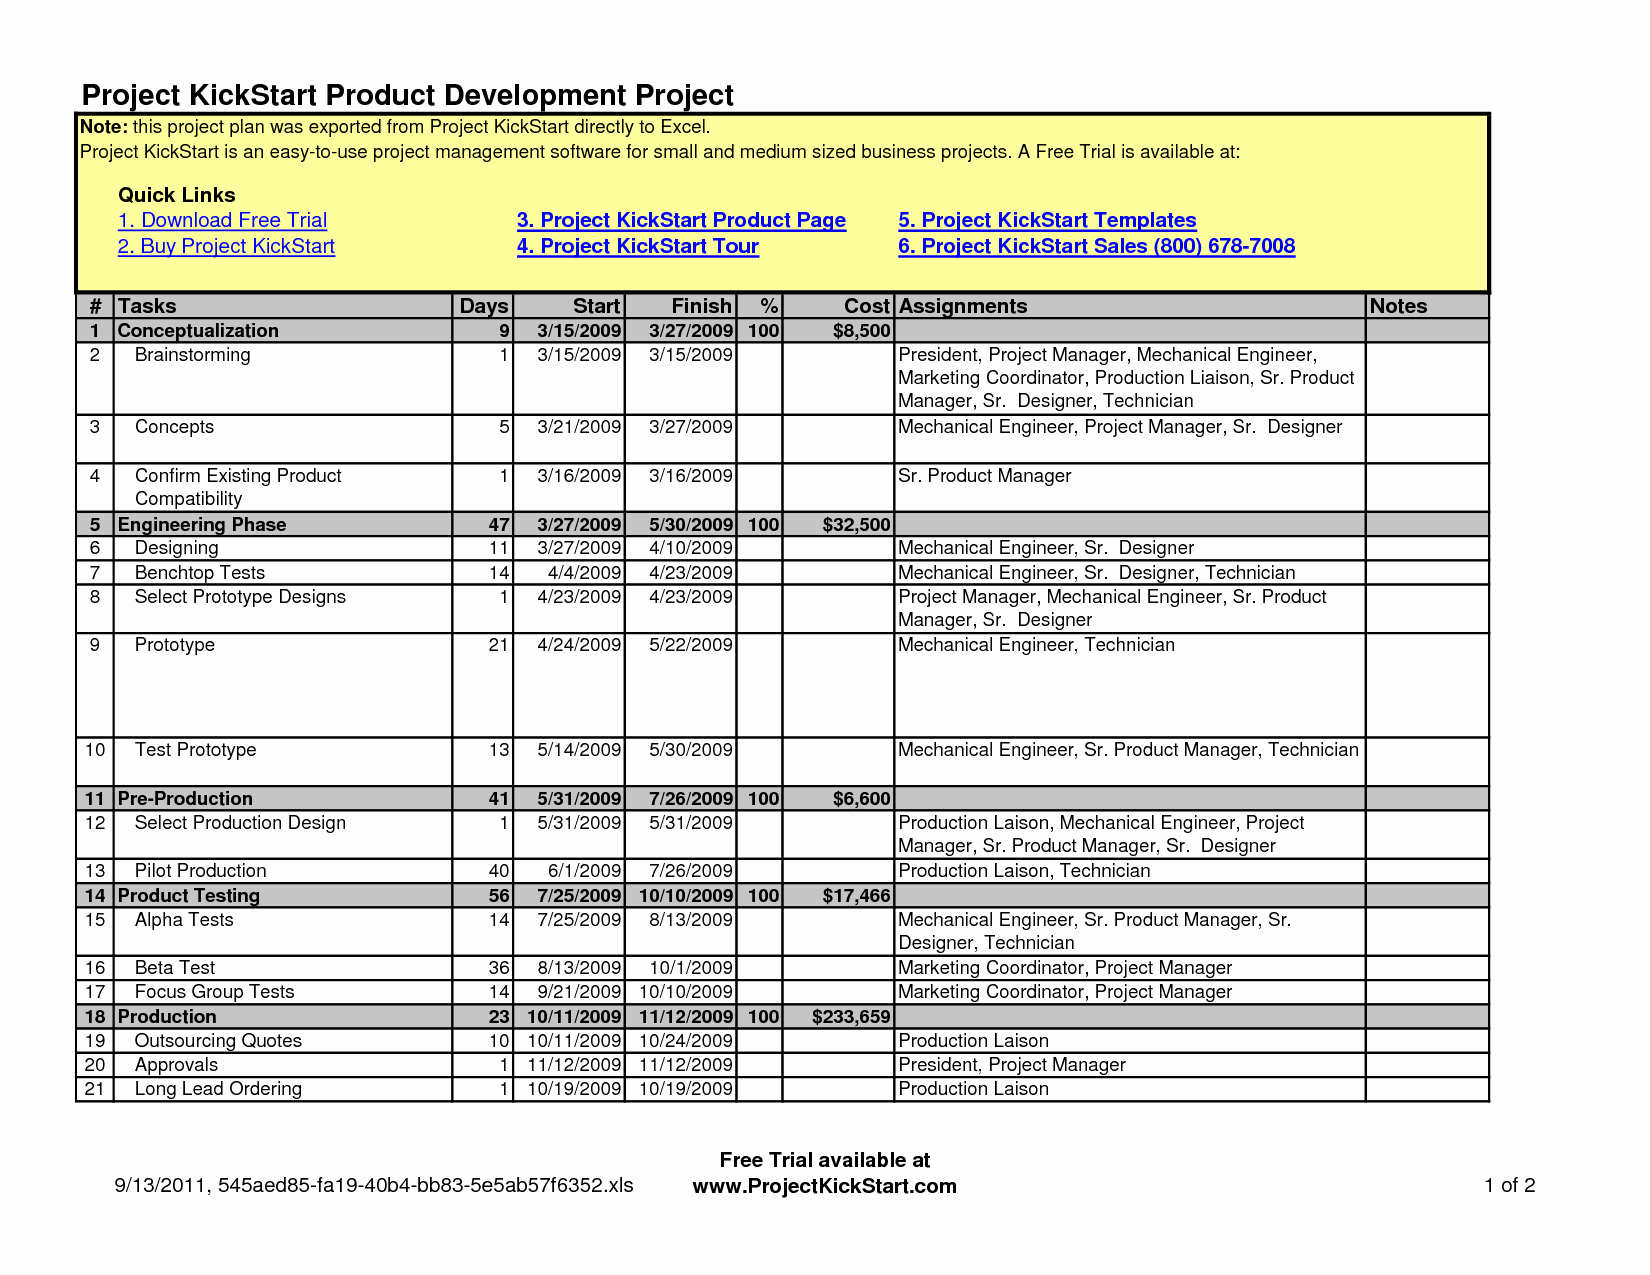 Project Management Schedule Template Lovely Project Management Schedule Template Project Management